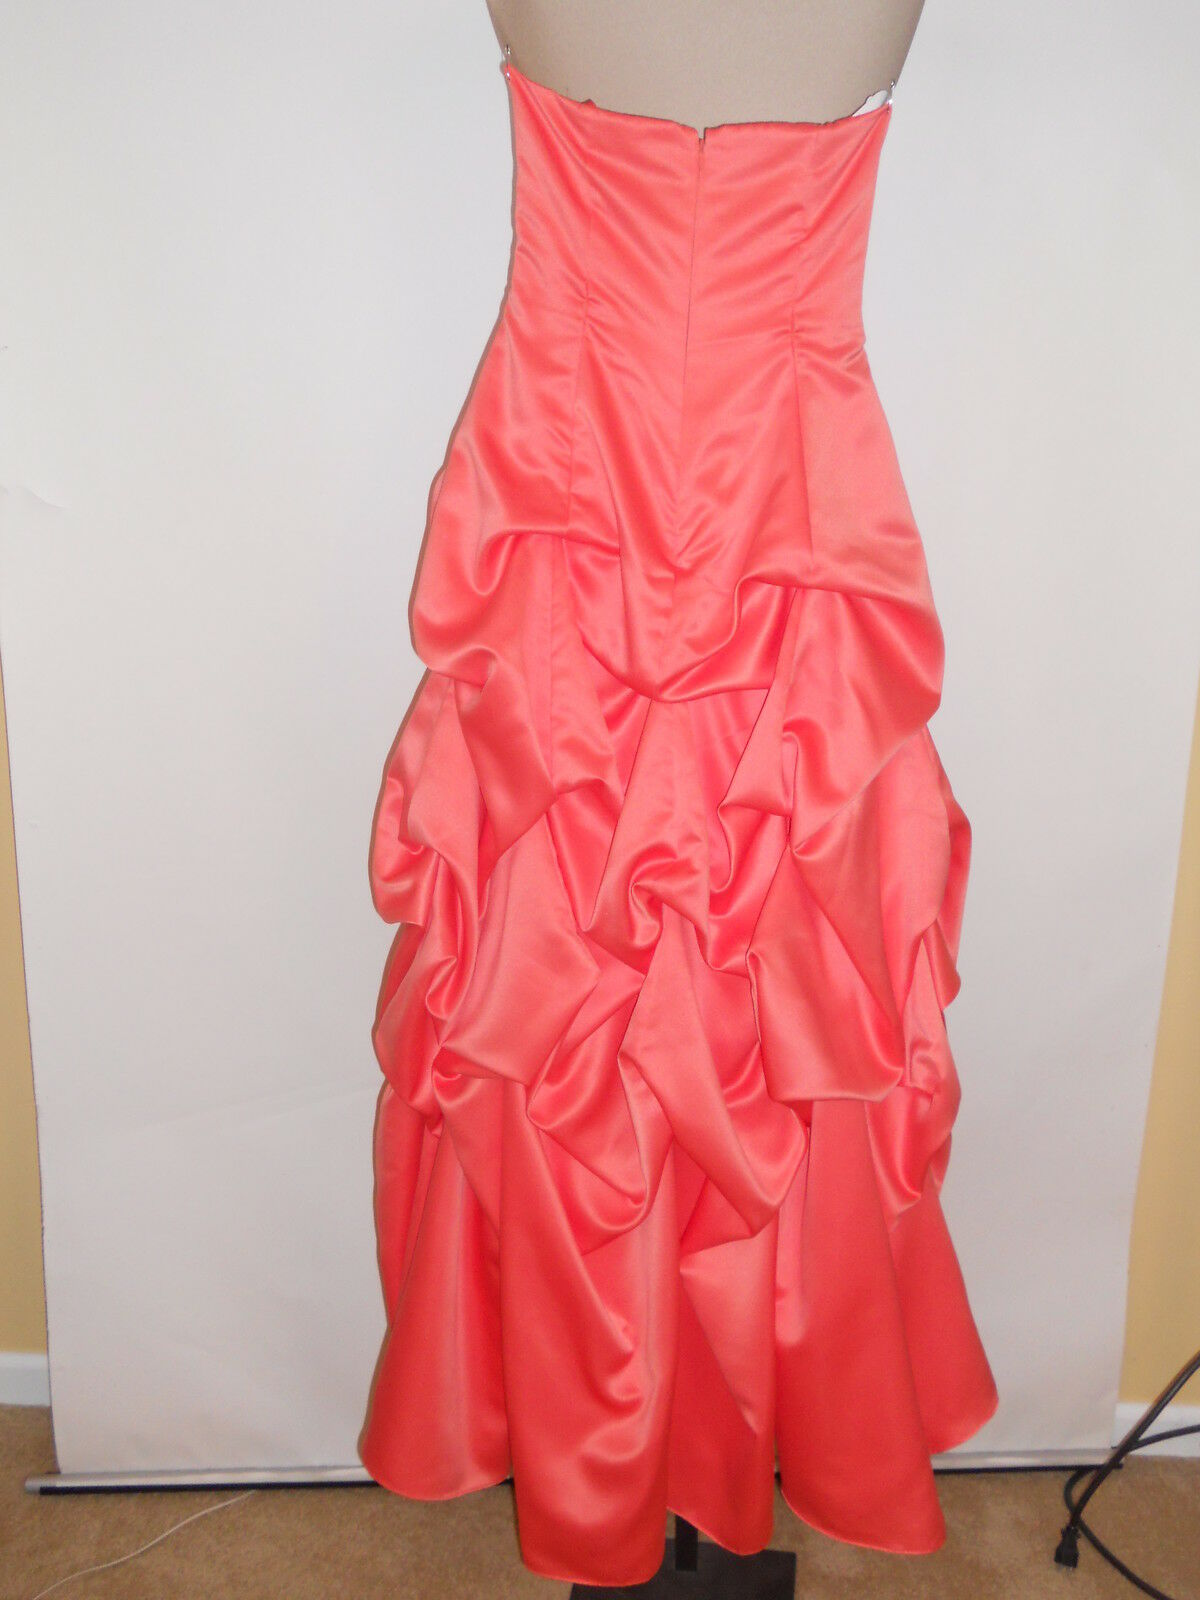 CITY TRIANGLES TRIANGLES TRIANGLES PROM DRESS EVENING GOWN SIZE 5 5f8bea